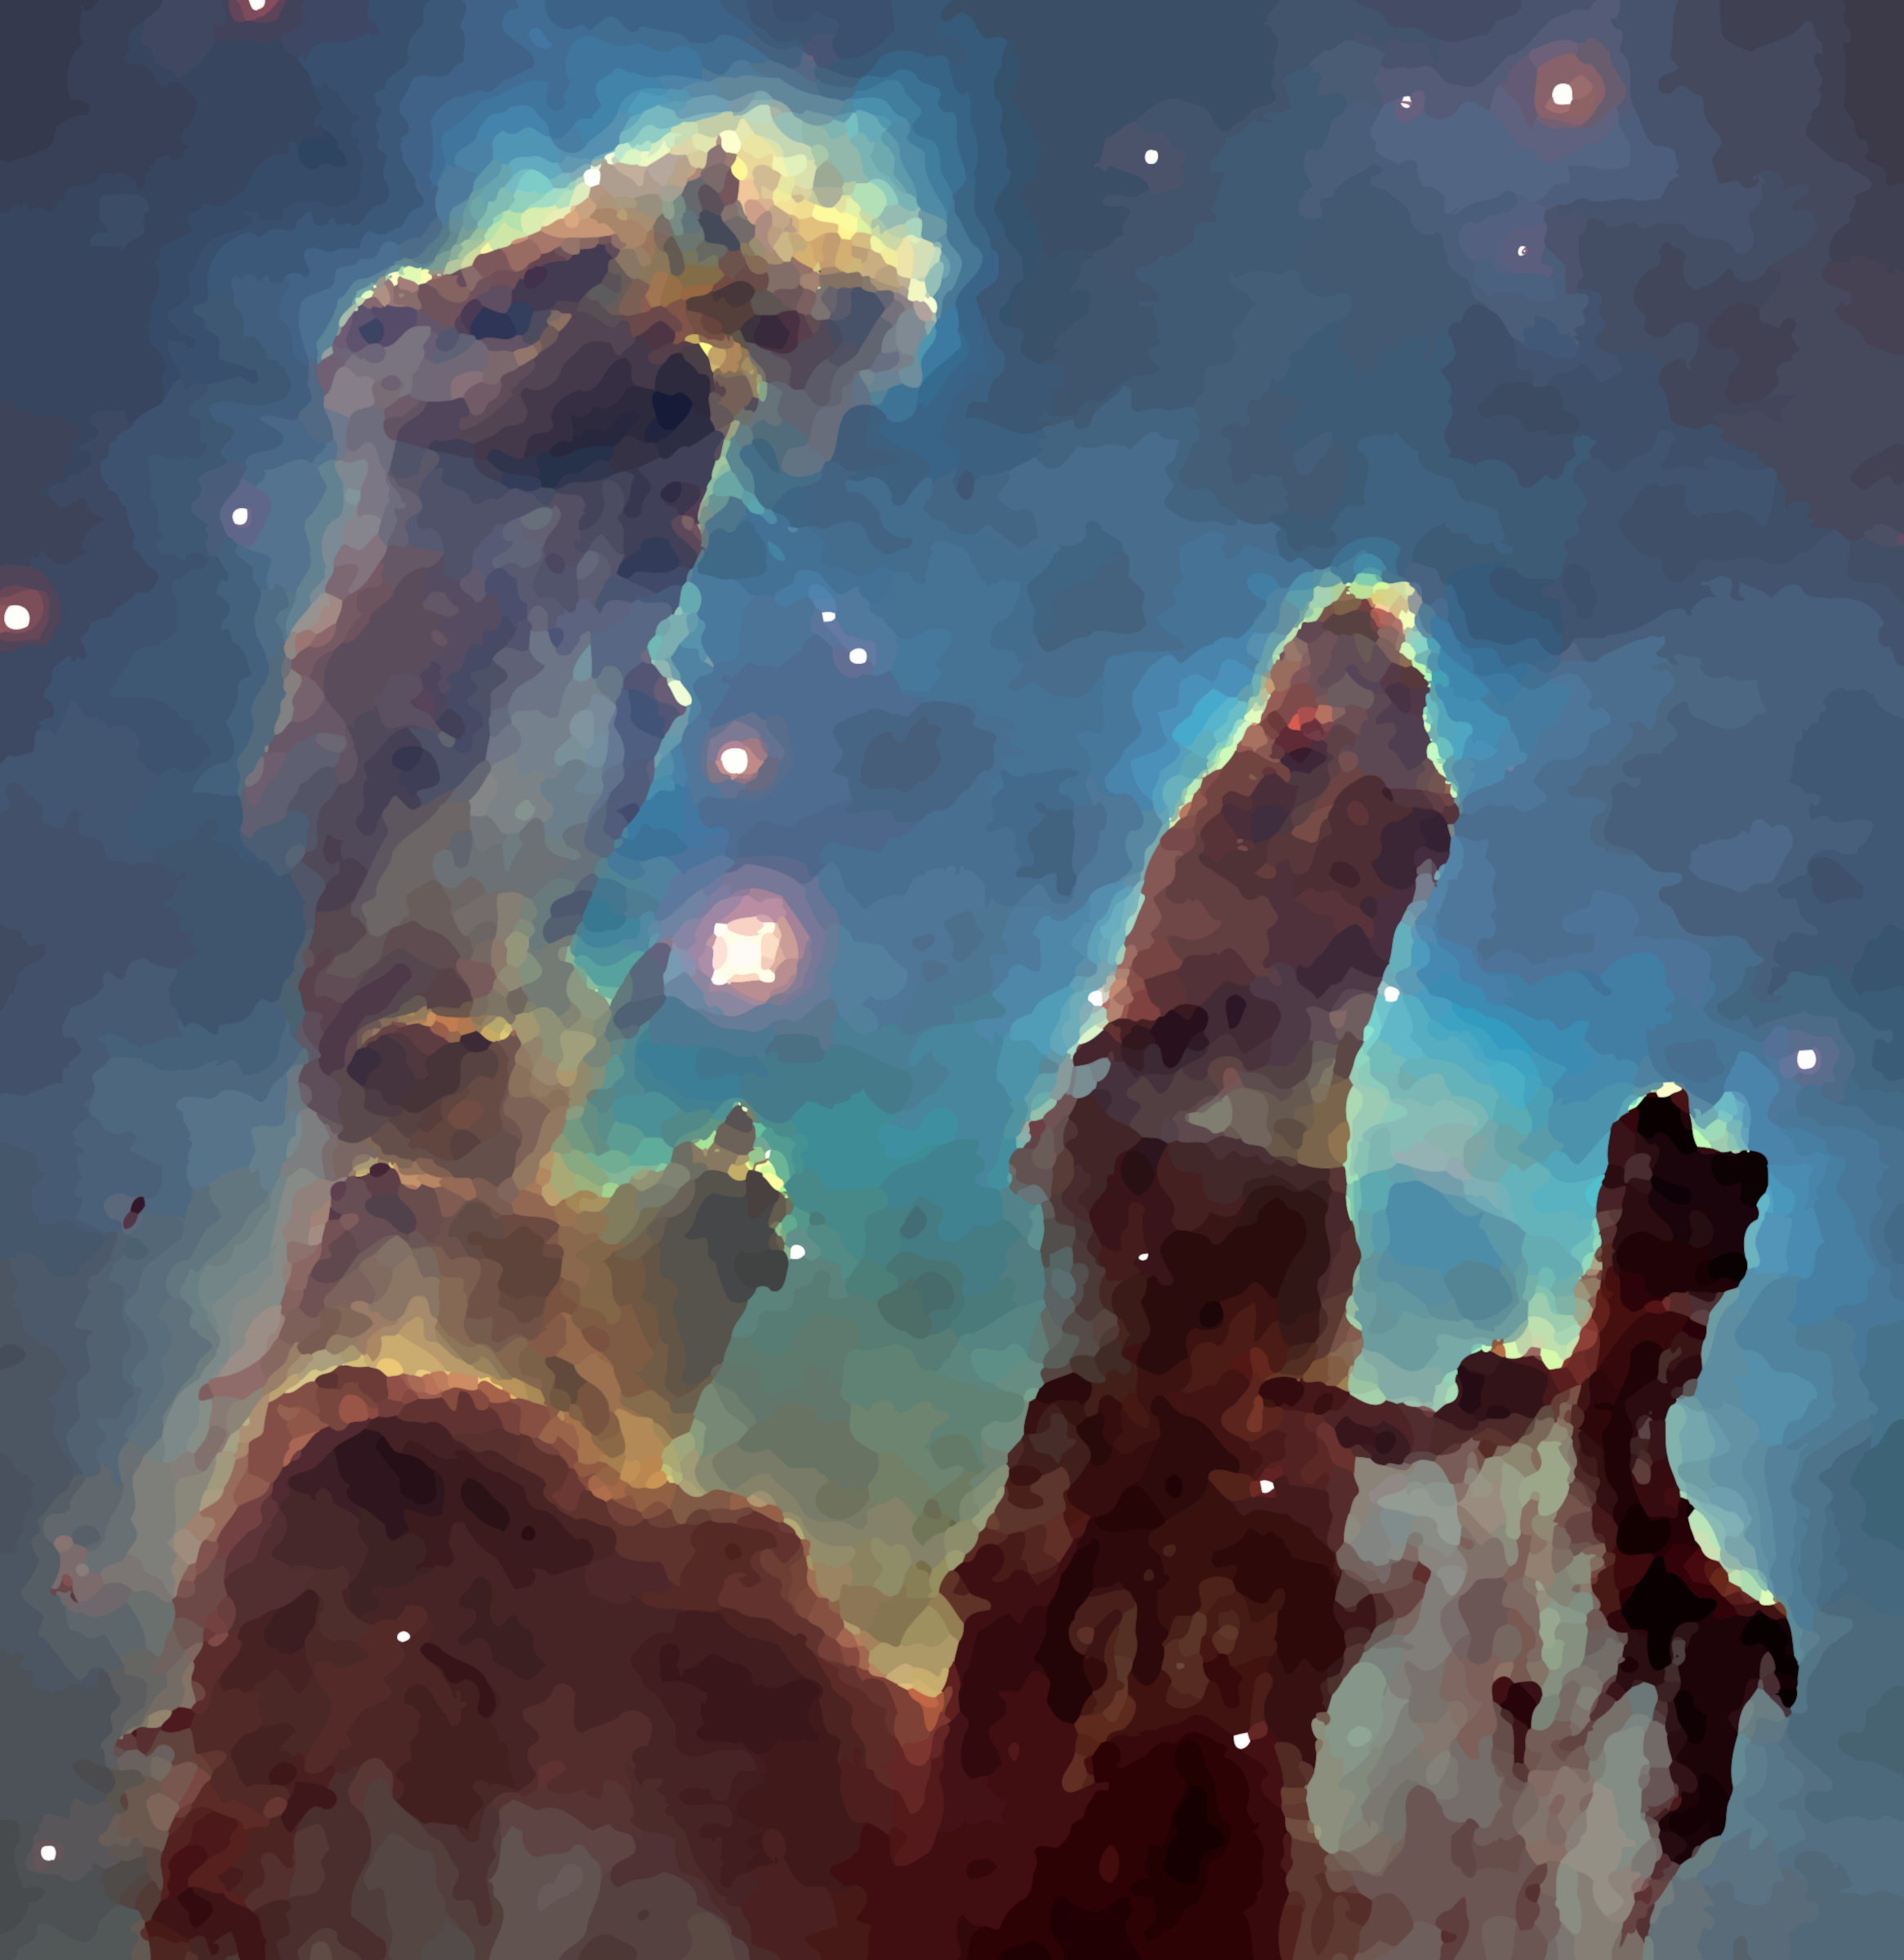 Pillars of Creation (oil painting effect) by Firkin